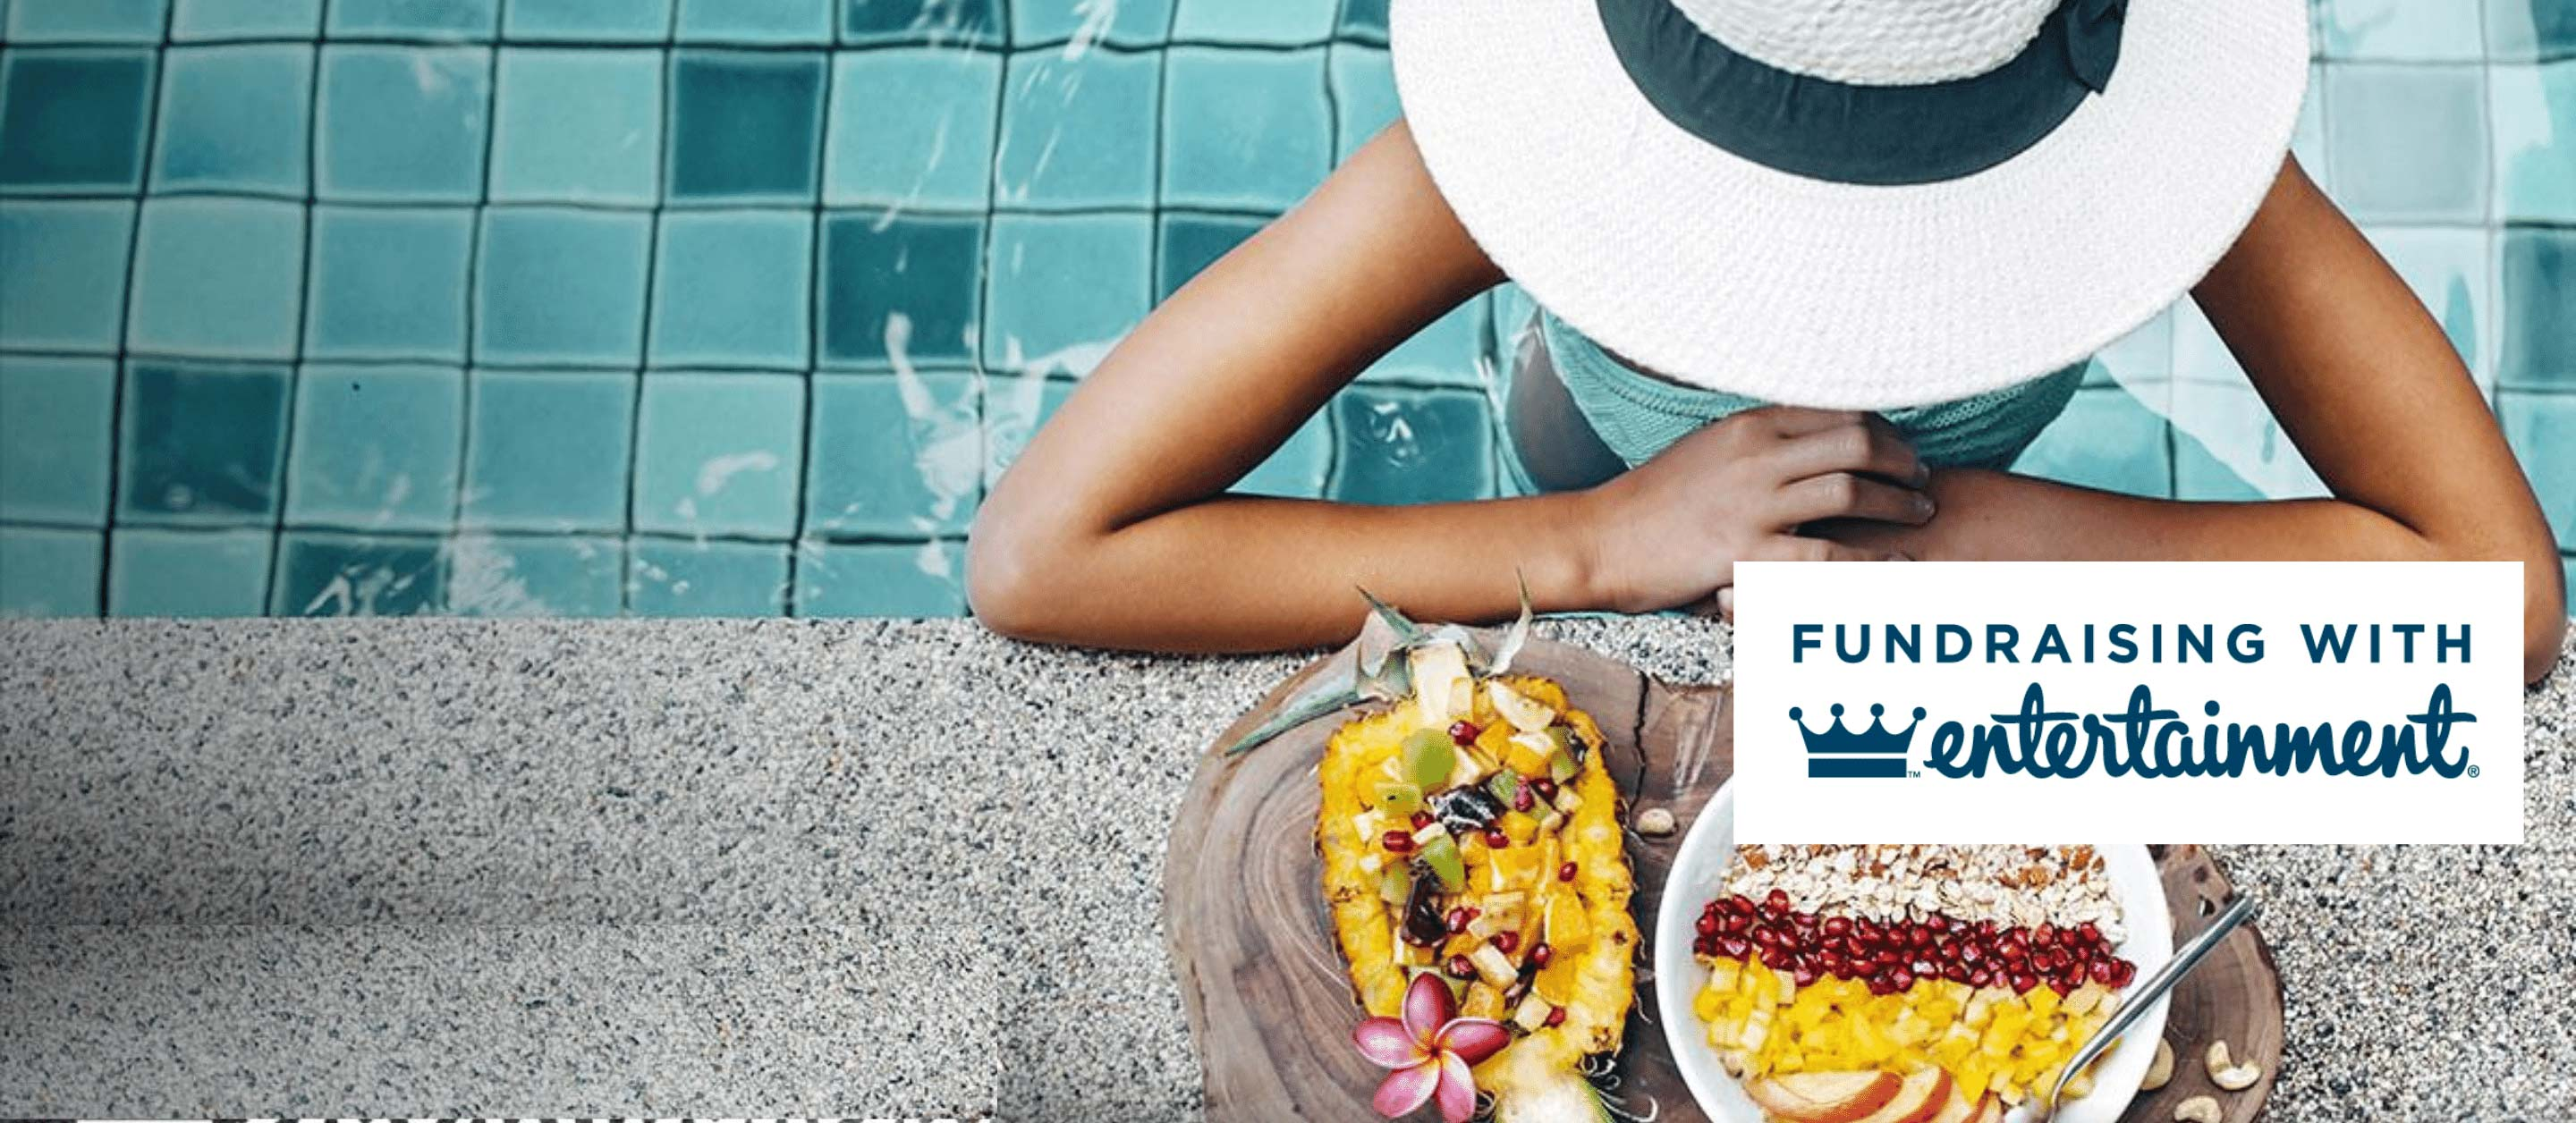 Lady looking at fresh food served poolside